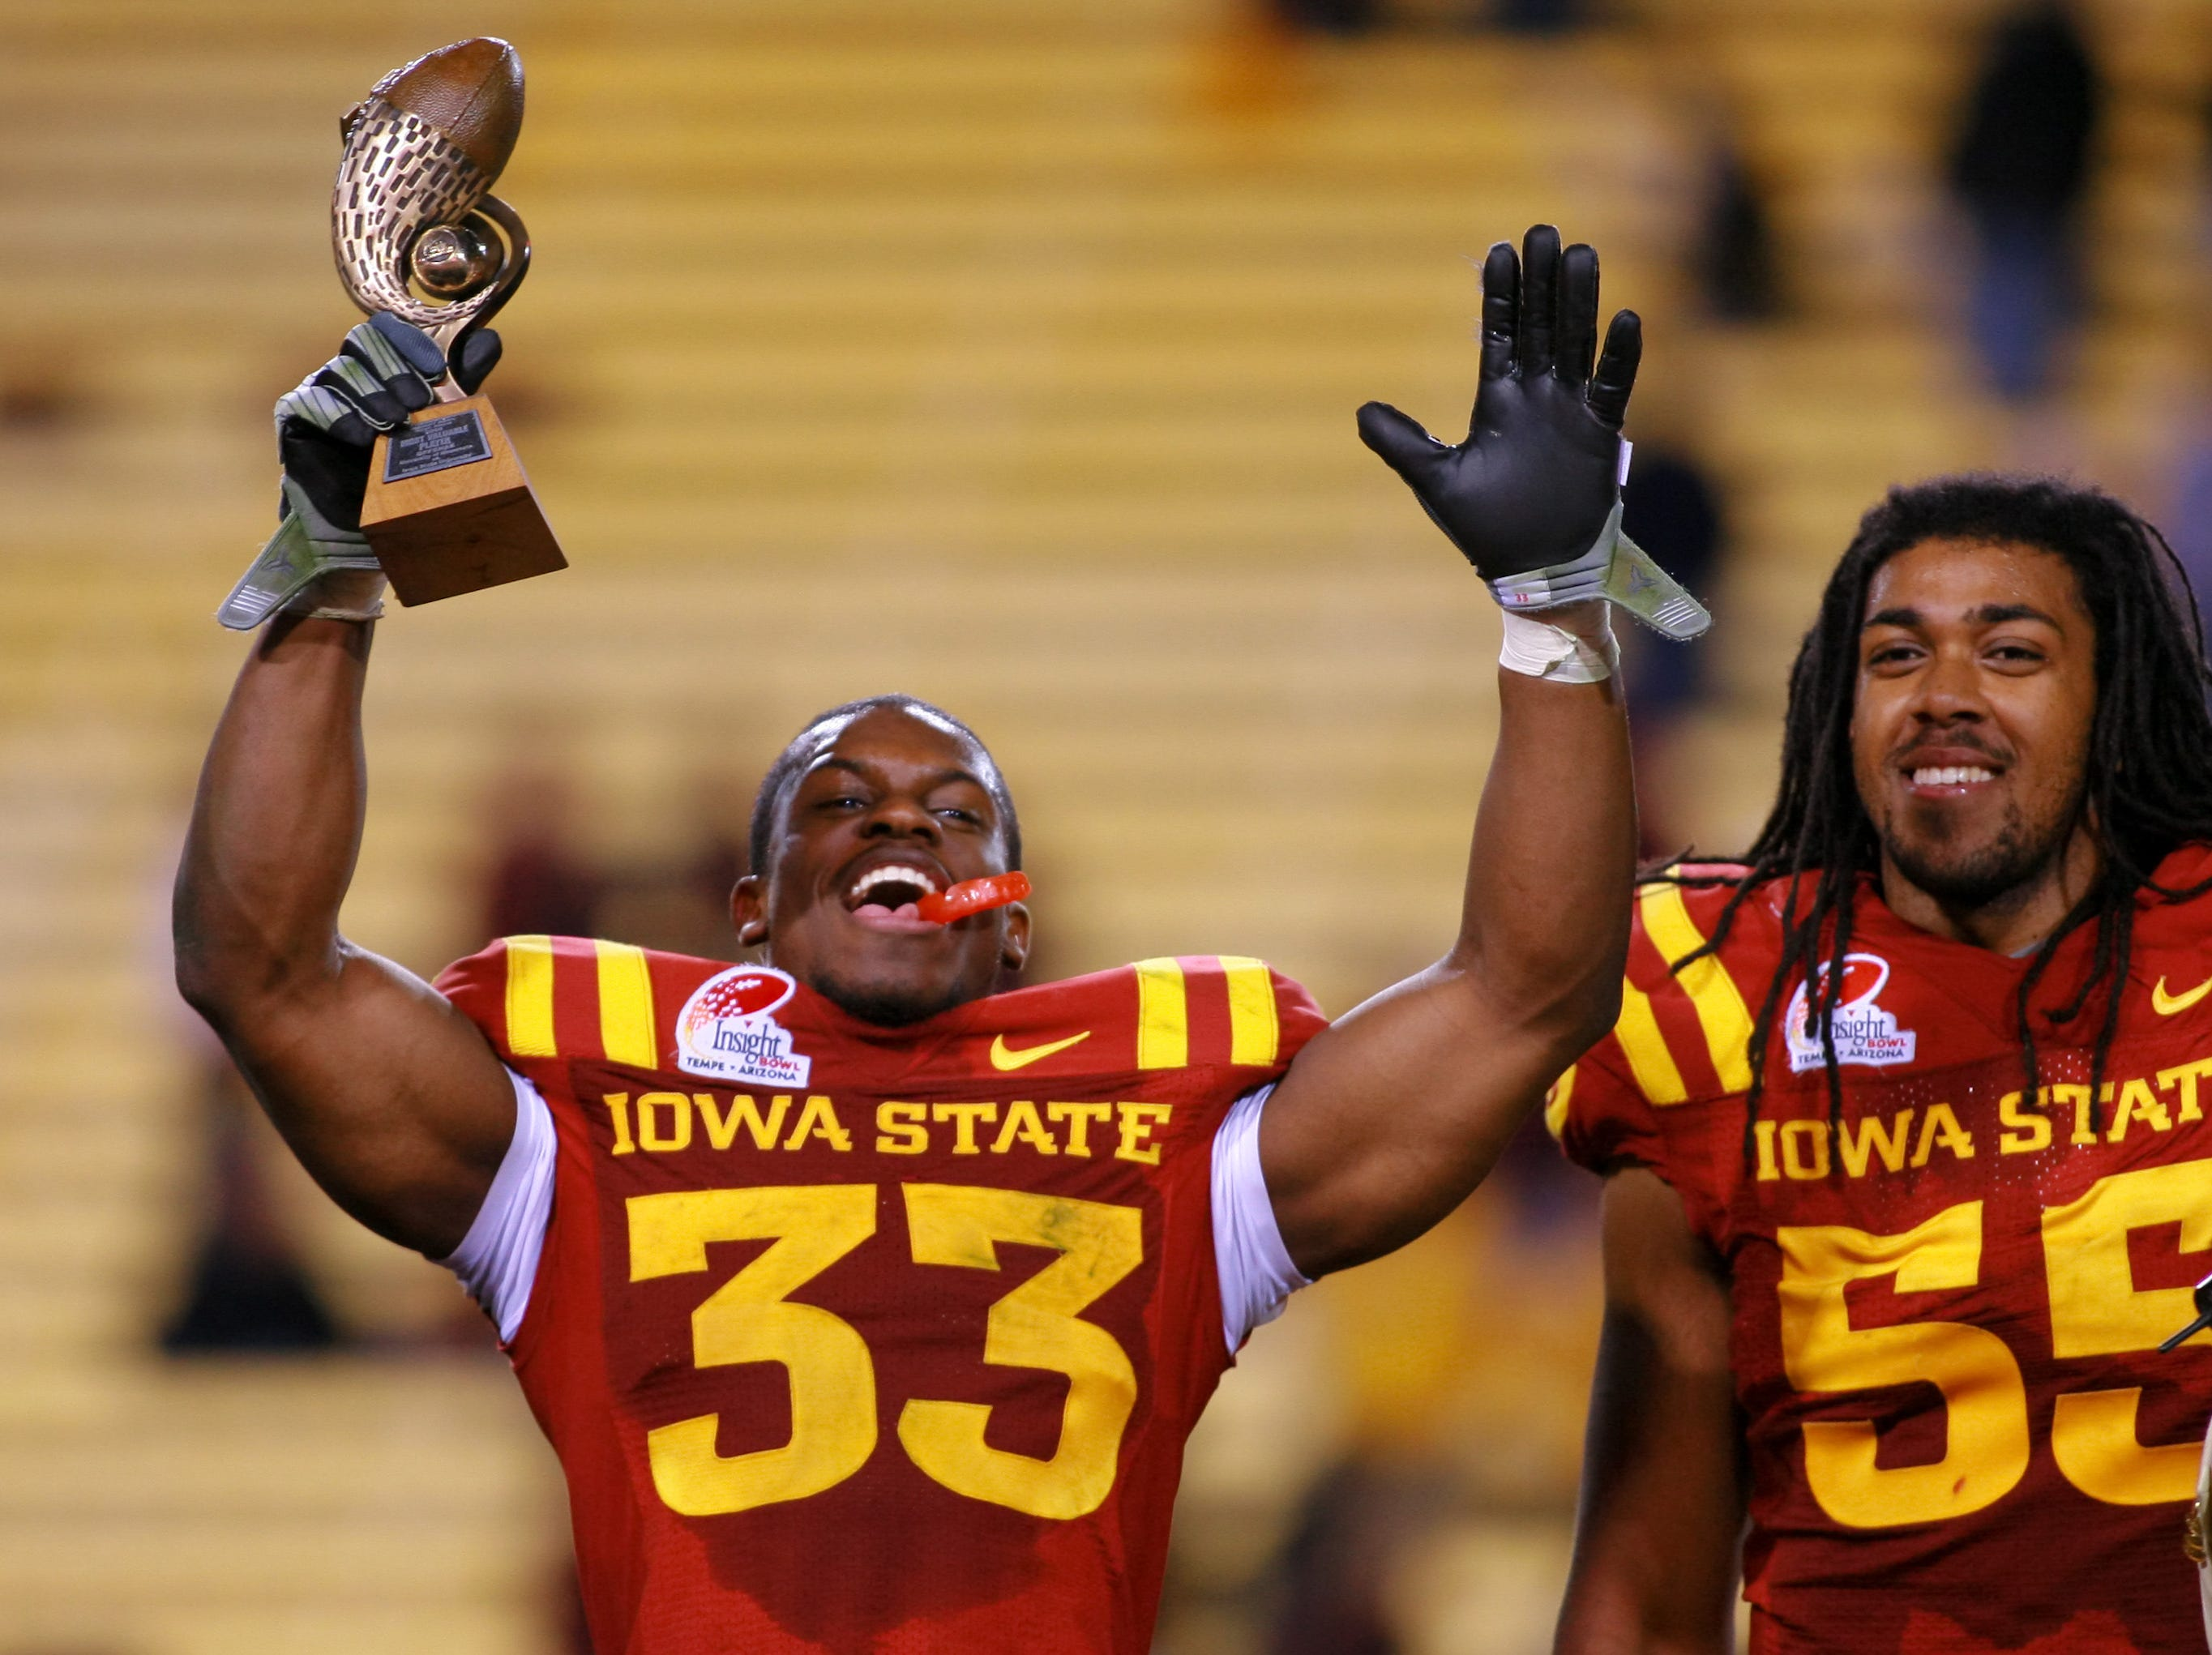 Dec 31, 2009; Tempe, AZ, USA; Iowa State Cyclones running back Alexander Robinson (33) holds up the trophy for most outstanding offensive player in the 2009 Insight Bowl.  The Cyclones defeated the Minnesota Golden Gophers 14-13 at Sun Devil Stadium.  Mandatory Credit: Chris Morrison-USA TODAY Sports